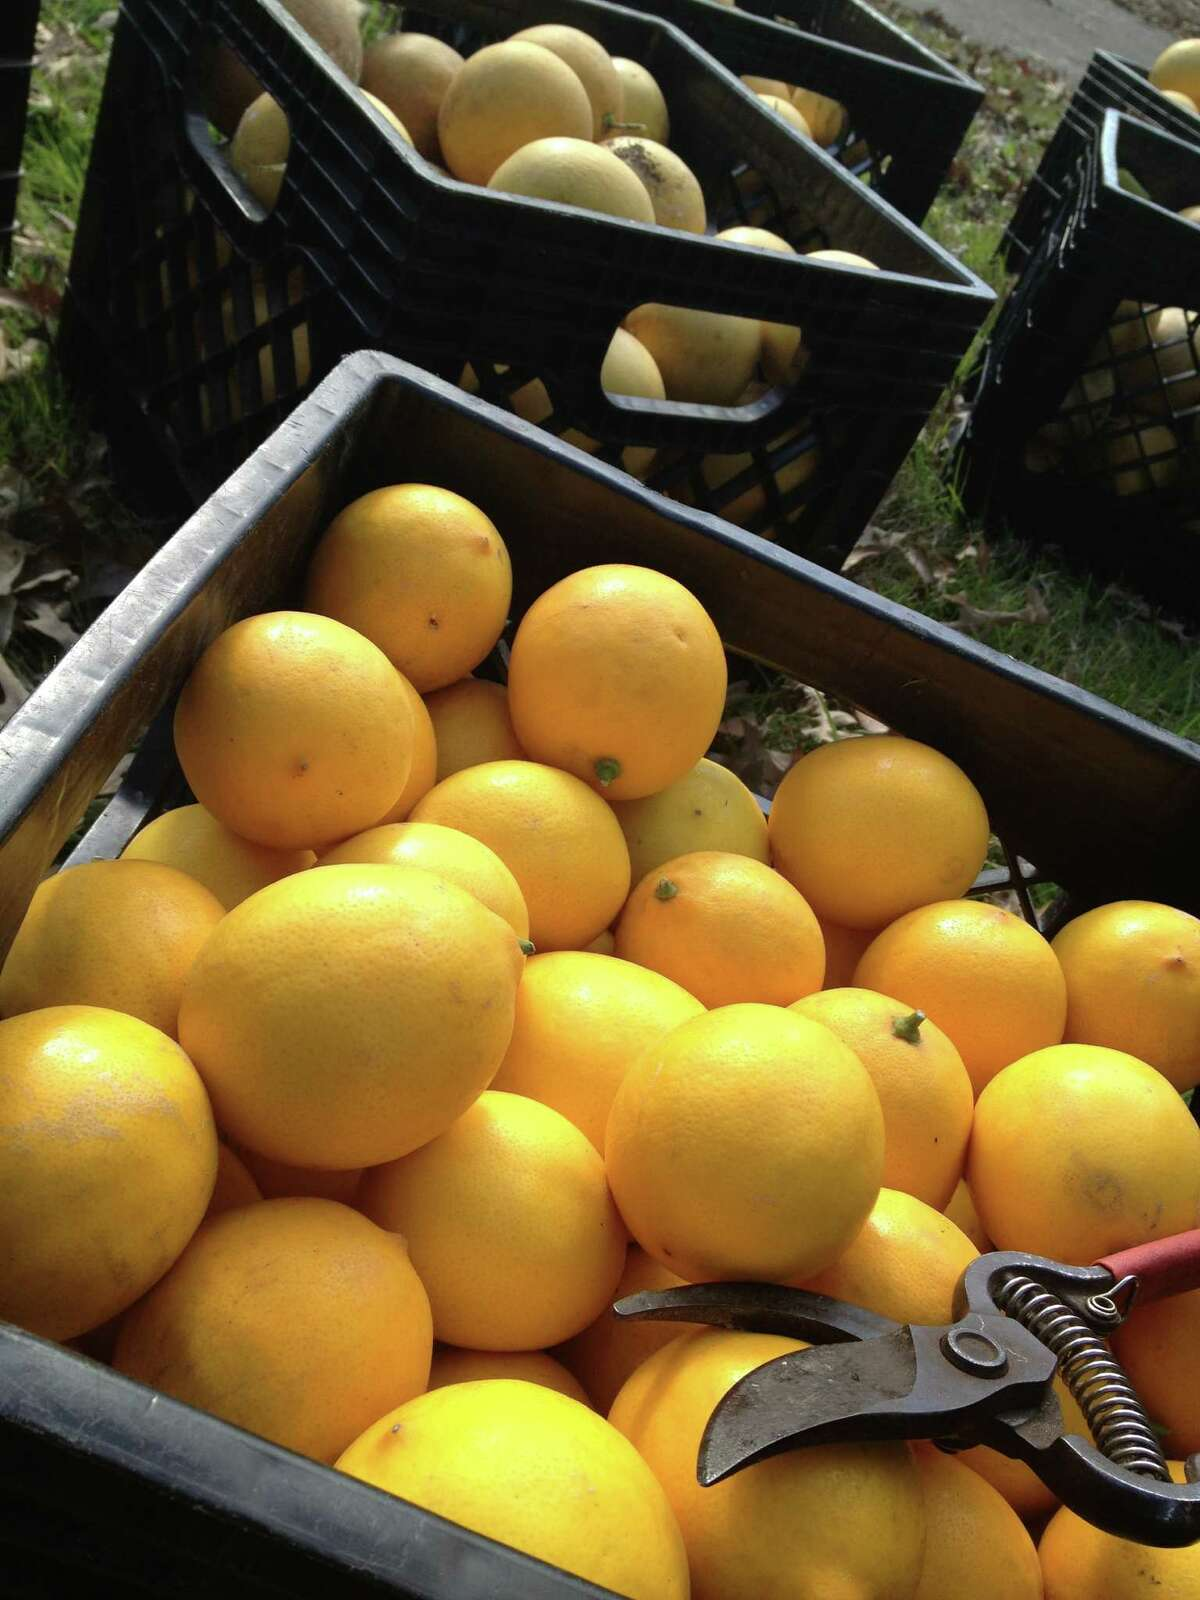 FruitShare provides its produce to Casa Juan Diego for distribution.